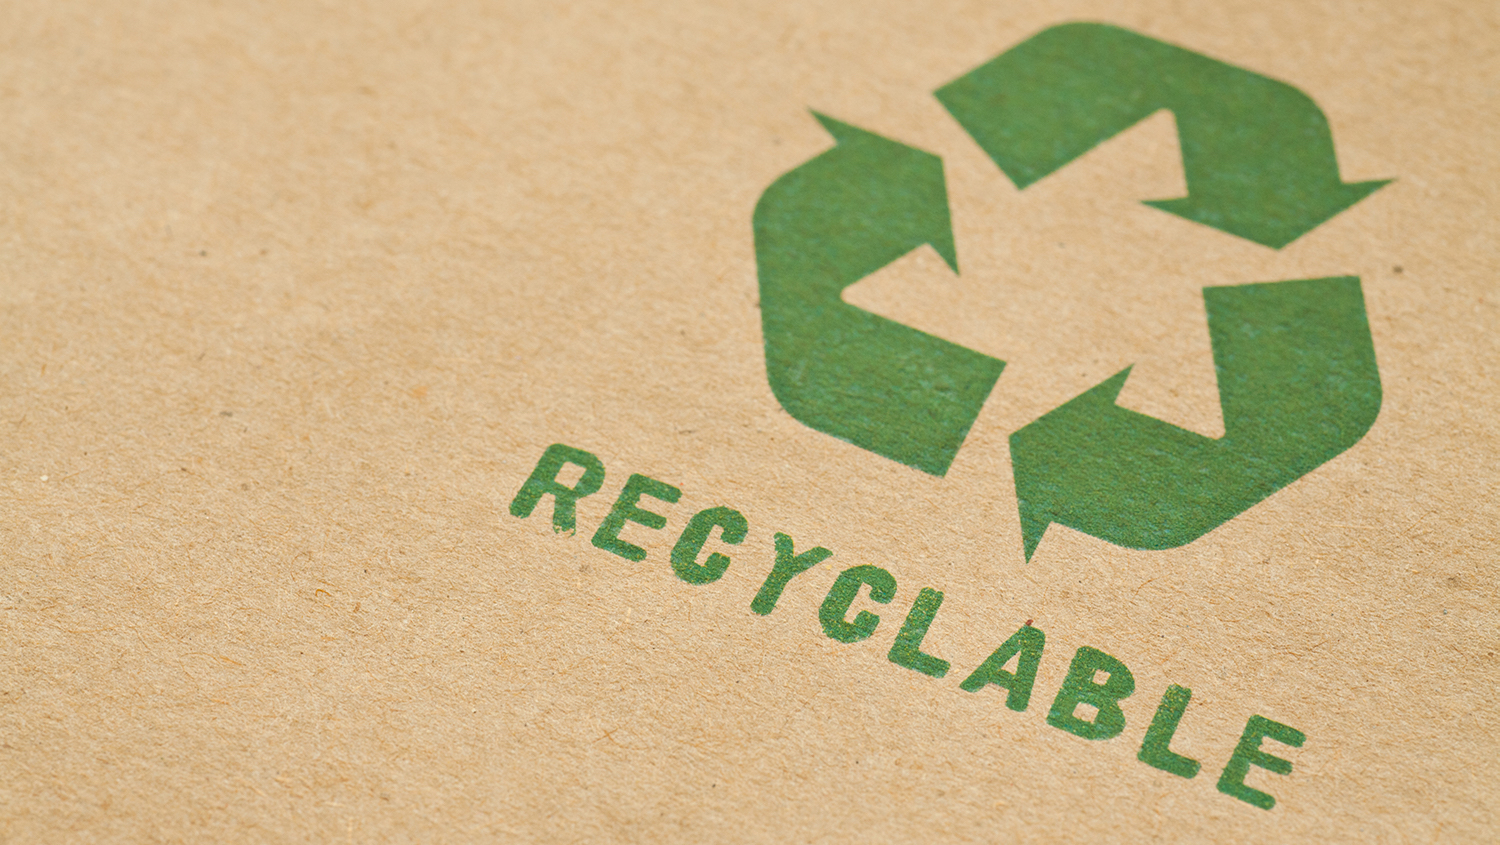 Green recycle symbol on cardboard